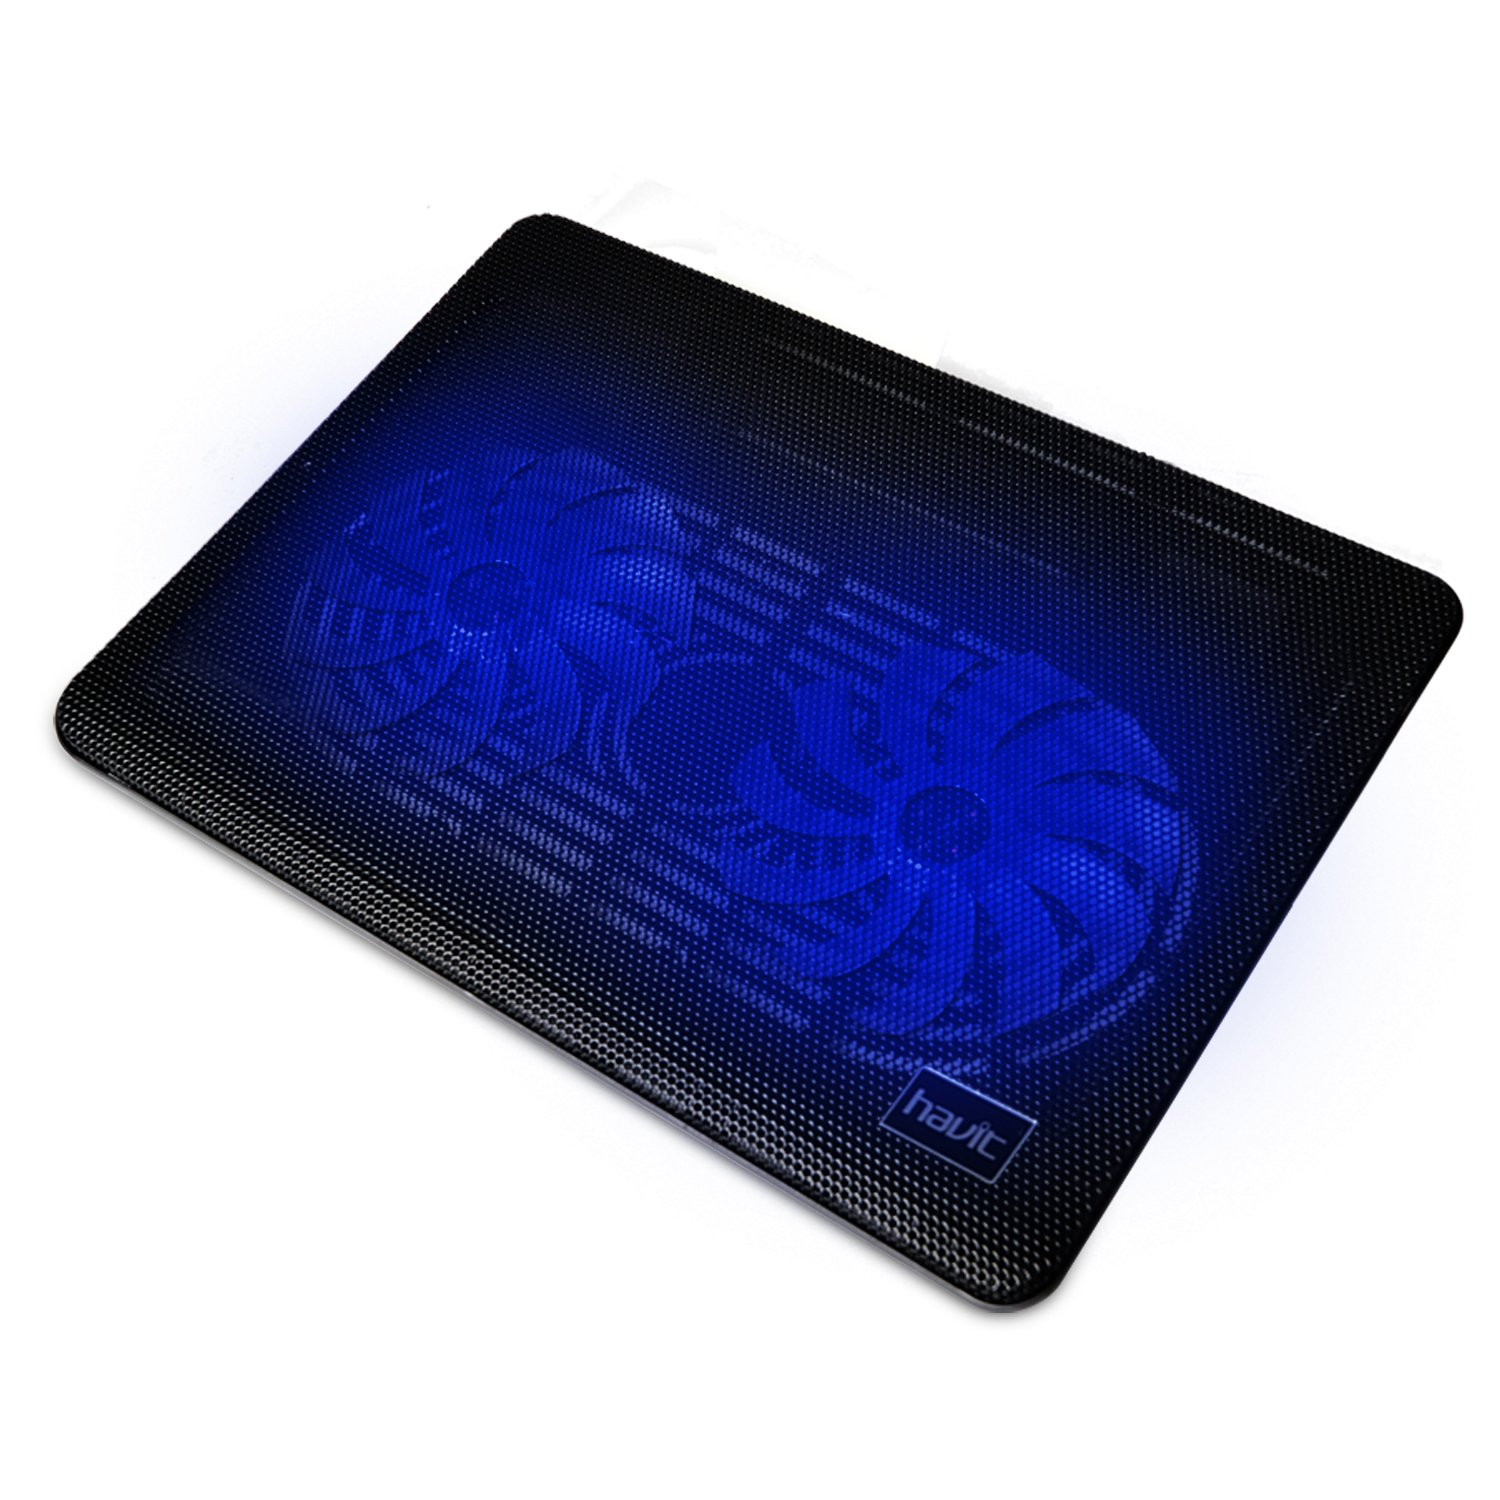 "HAVIT HV-F2033 14-15.6"" Super-slim Laptop Cooler Cooling Pad with Turbo Dual Fan (2 Fans)"